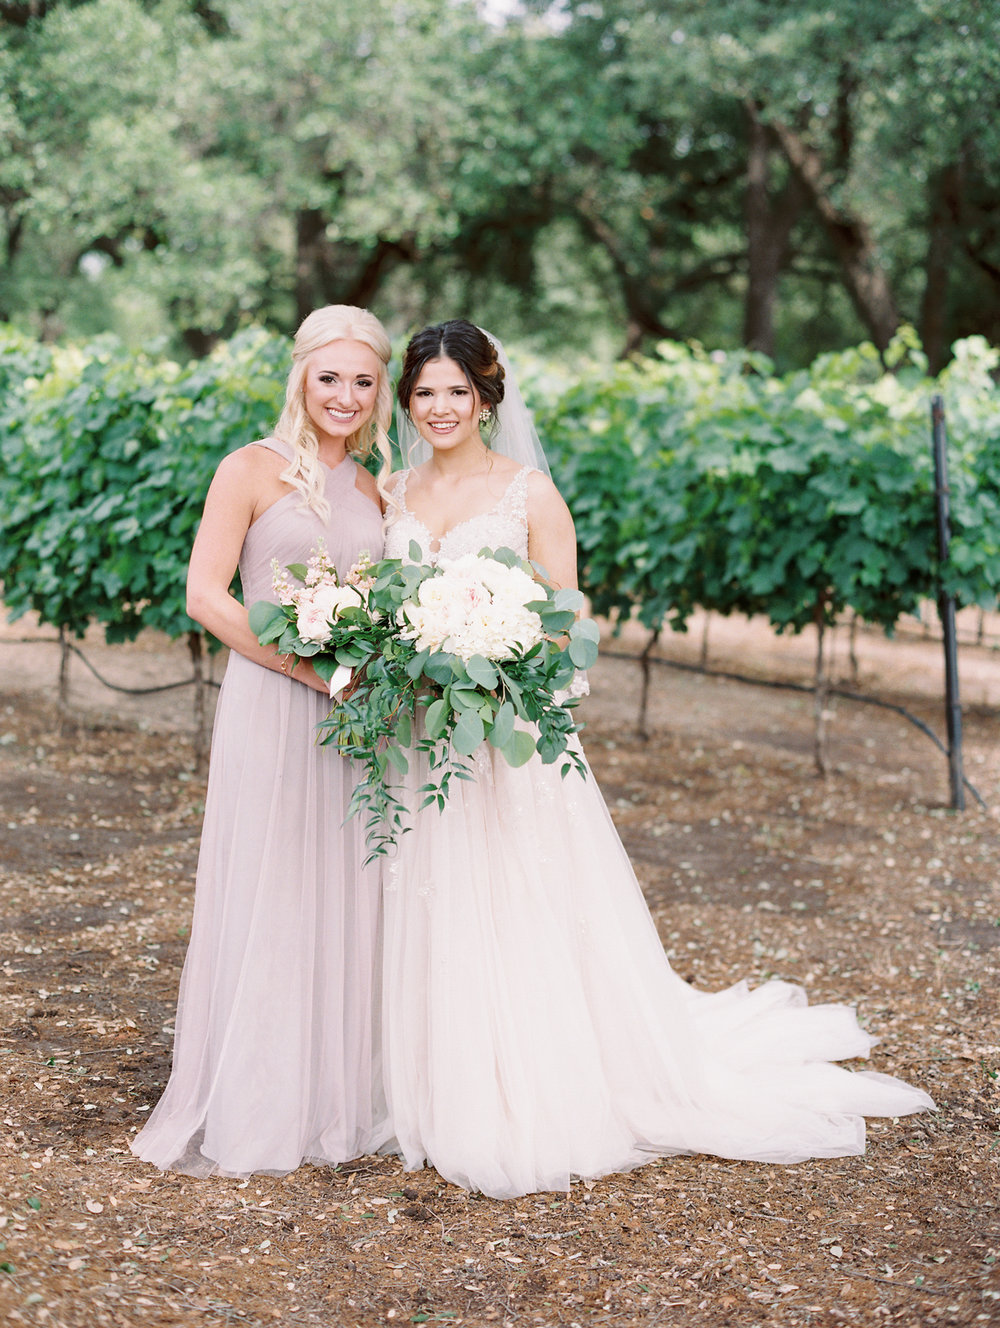 Elegant Spring Vineyard Wedding | Film Wedding Photographer | Austin Wedding Photographer | Romantic Neutral Bridesmaid Dresses | Britni Dean Photography // britnidean.com